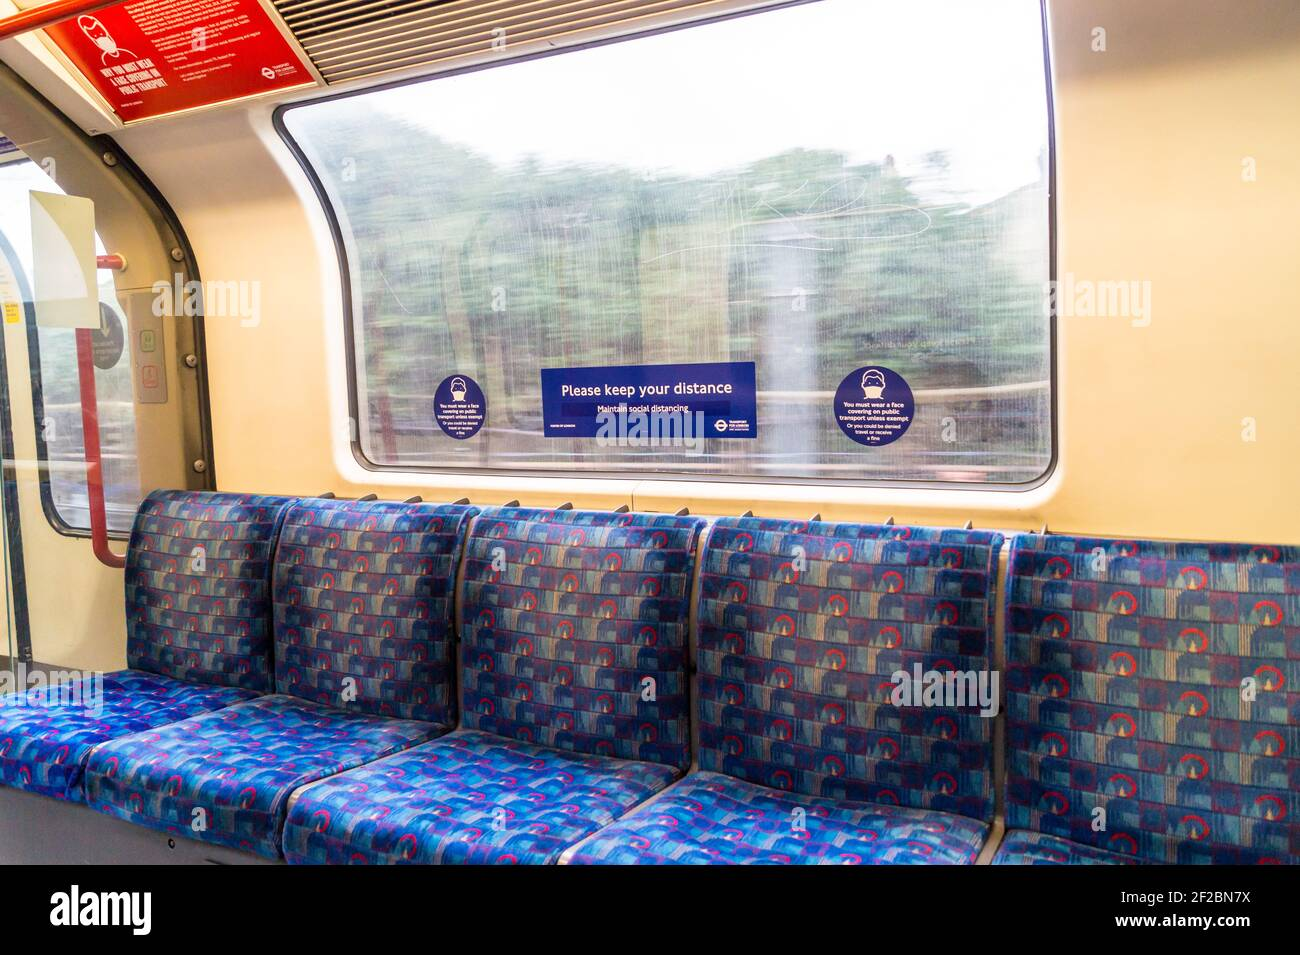 view-through-the-window-of-an-empty-central-line-london-underground-train-with-a-coronavirus-face-covering-warning-sign-2F2BN7X.jpg